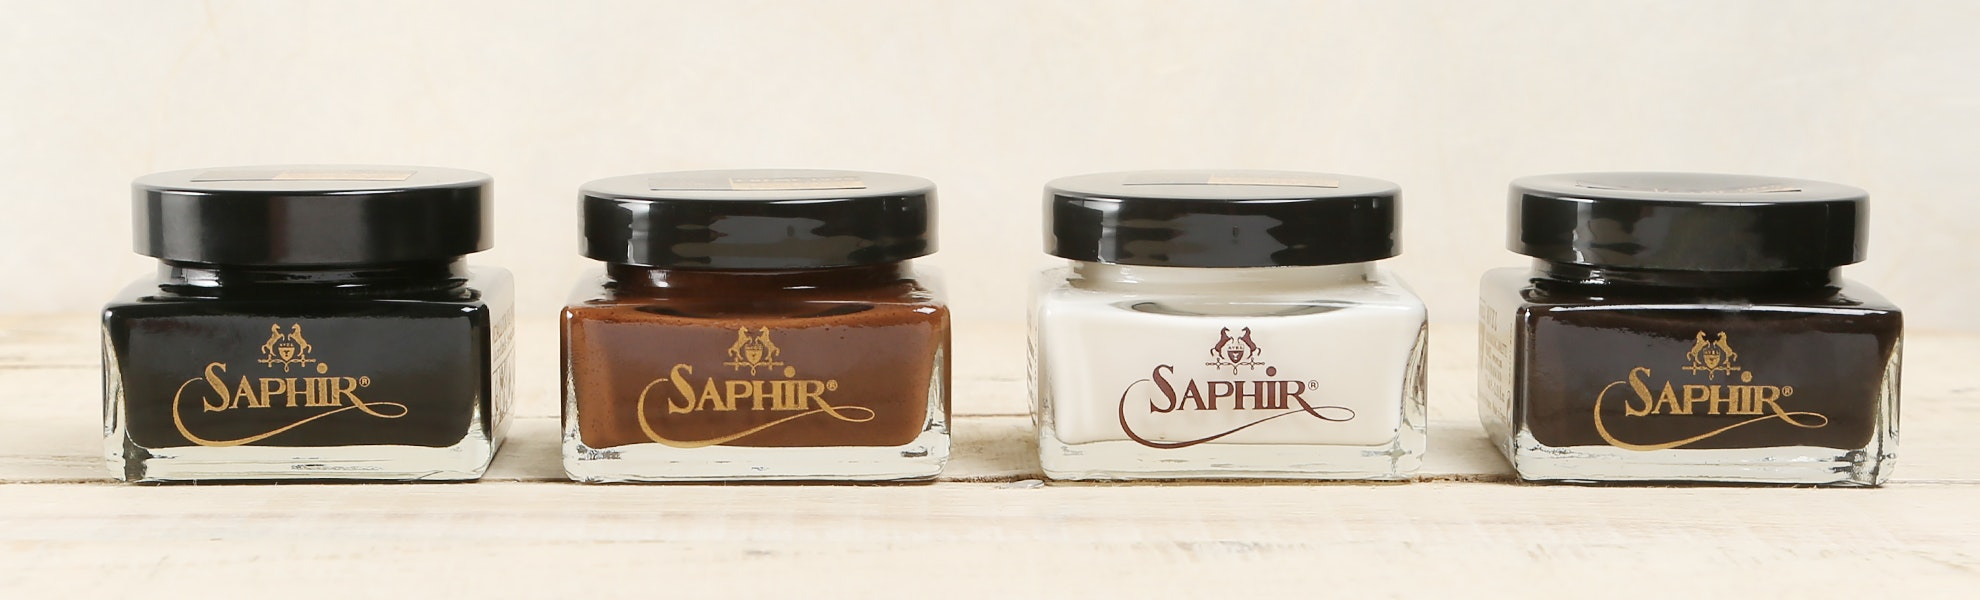 Saphir Cream Polishes & Conditioner (2-Pack)